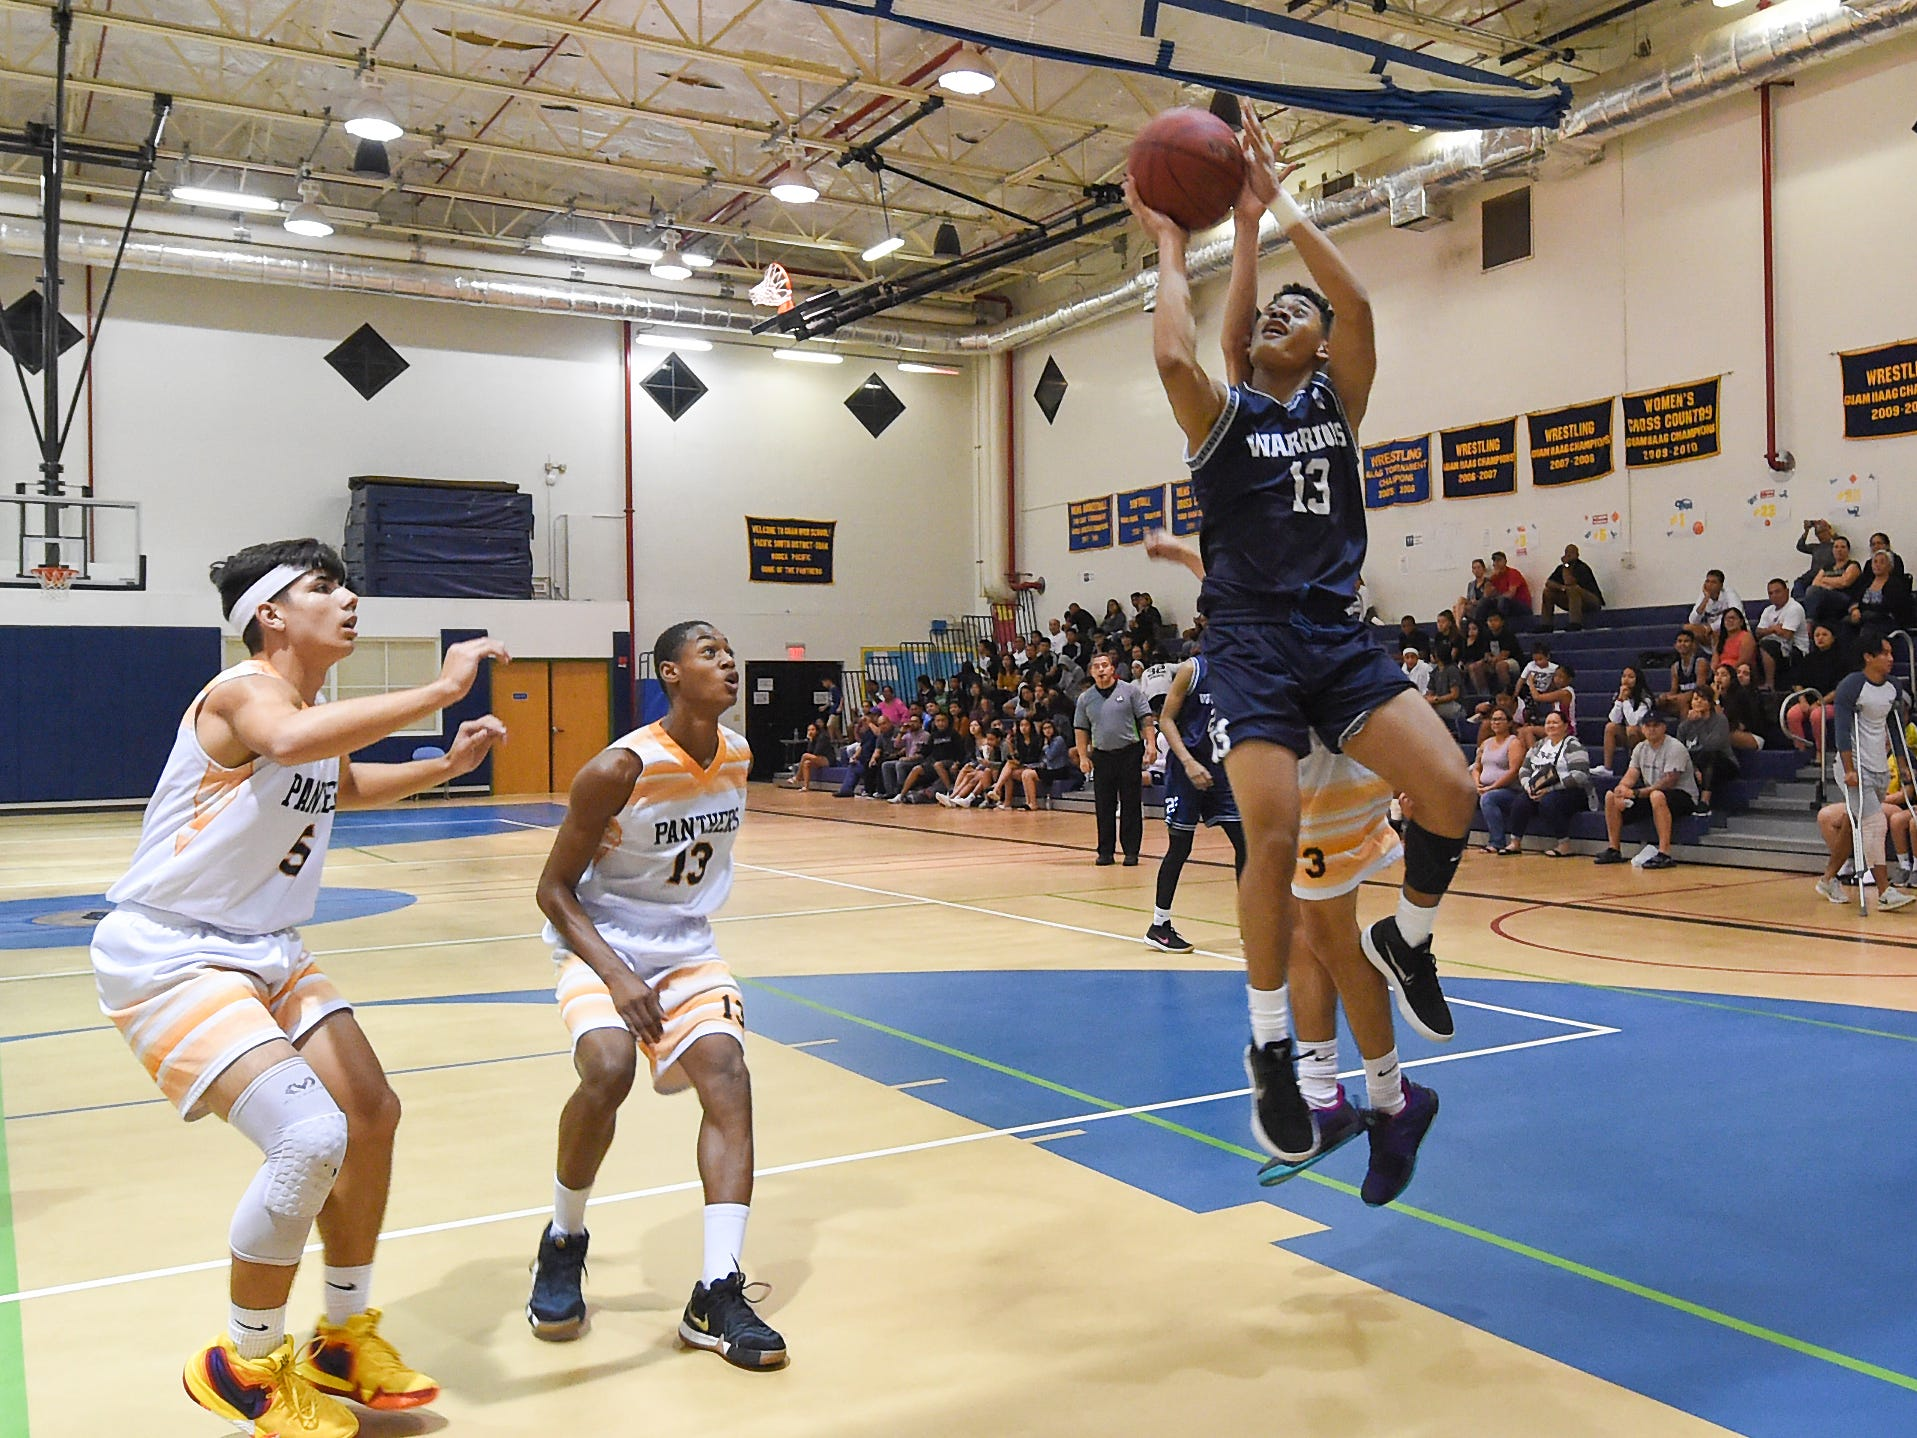 The Guam High Panthers faced the St. Paul Warriors for their IIAAG Boys' Basketball game at the Guam High School Gym, Feb. 5, 2019.